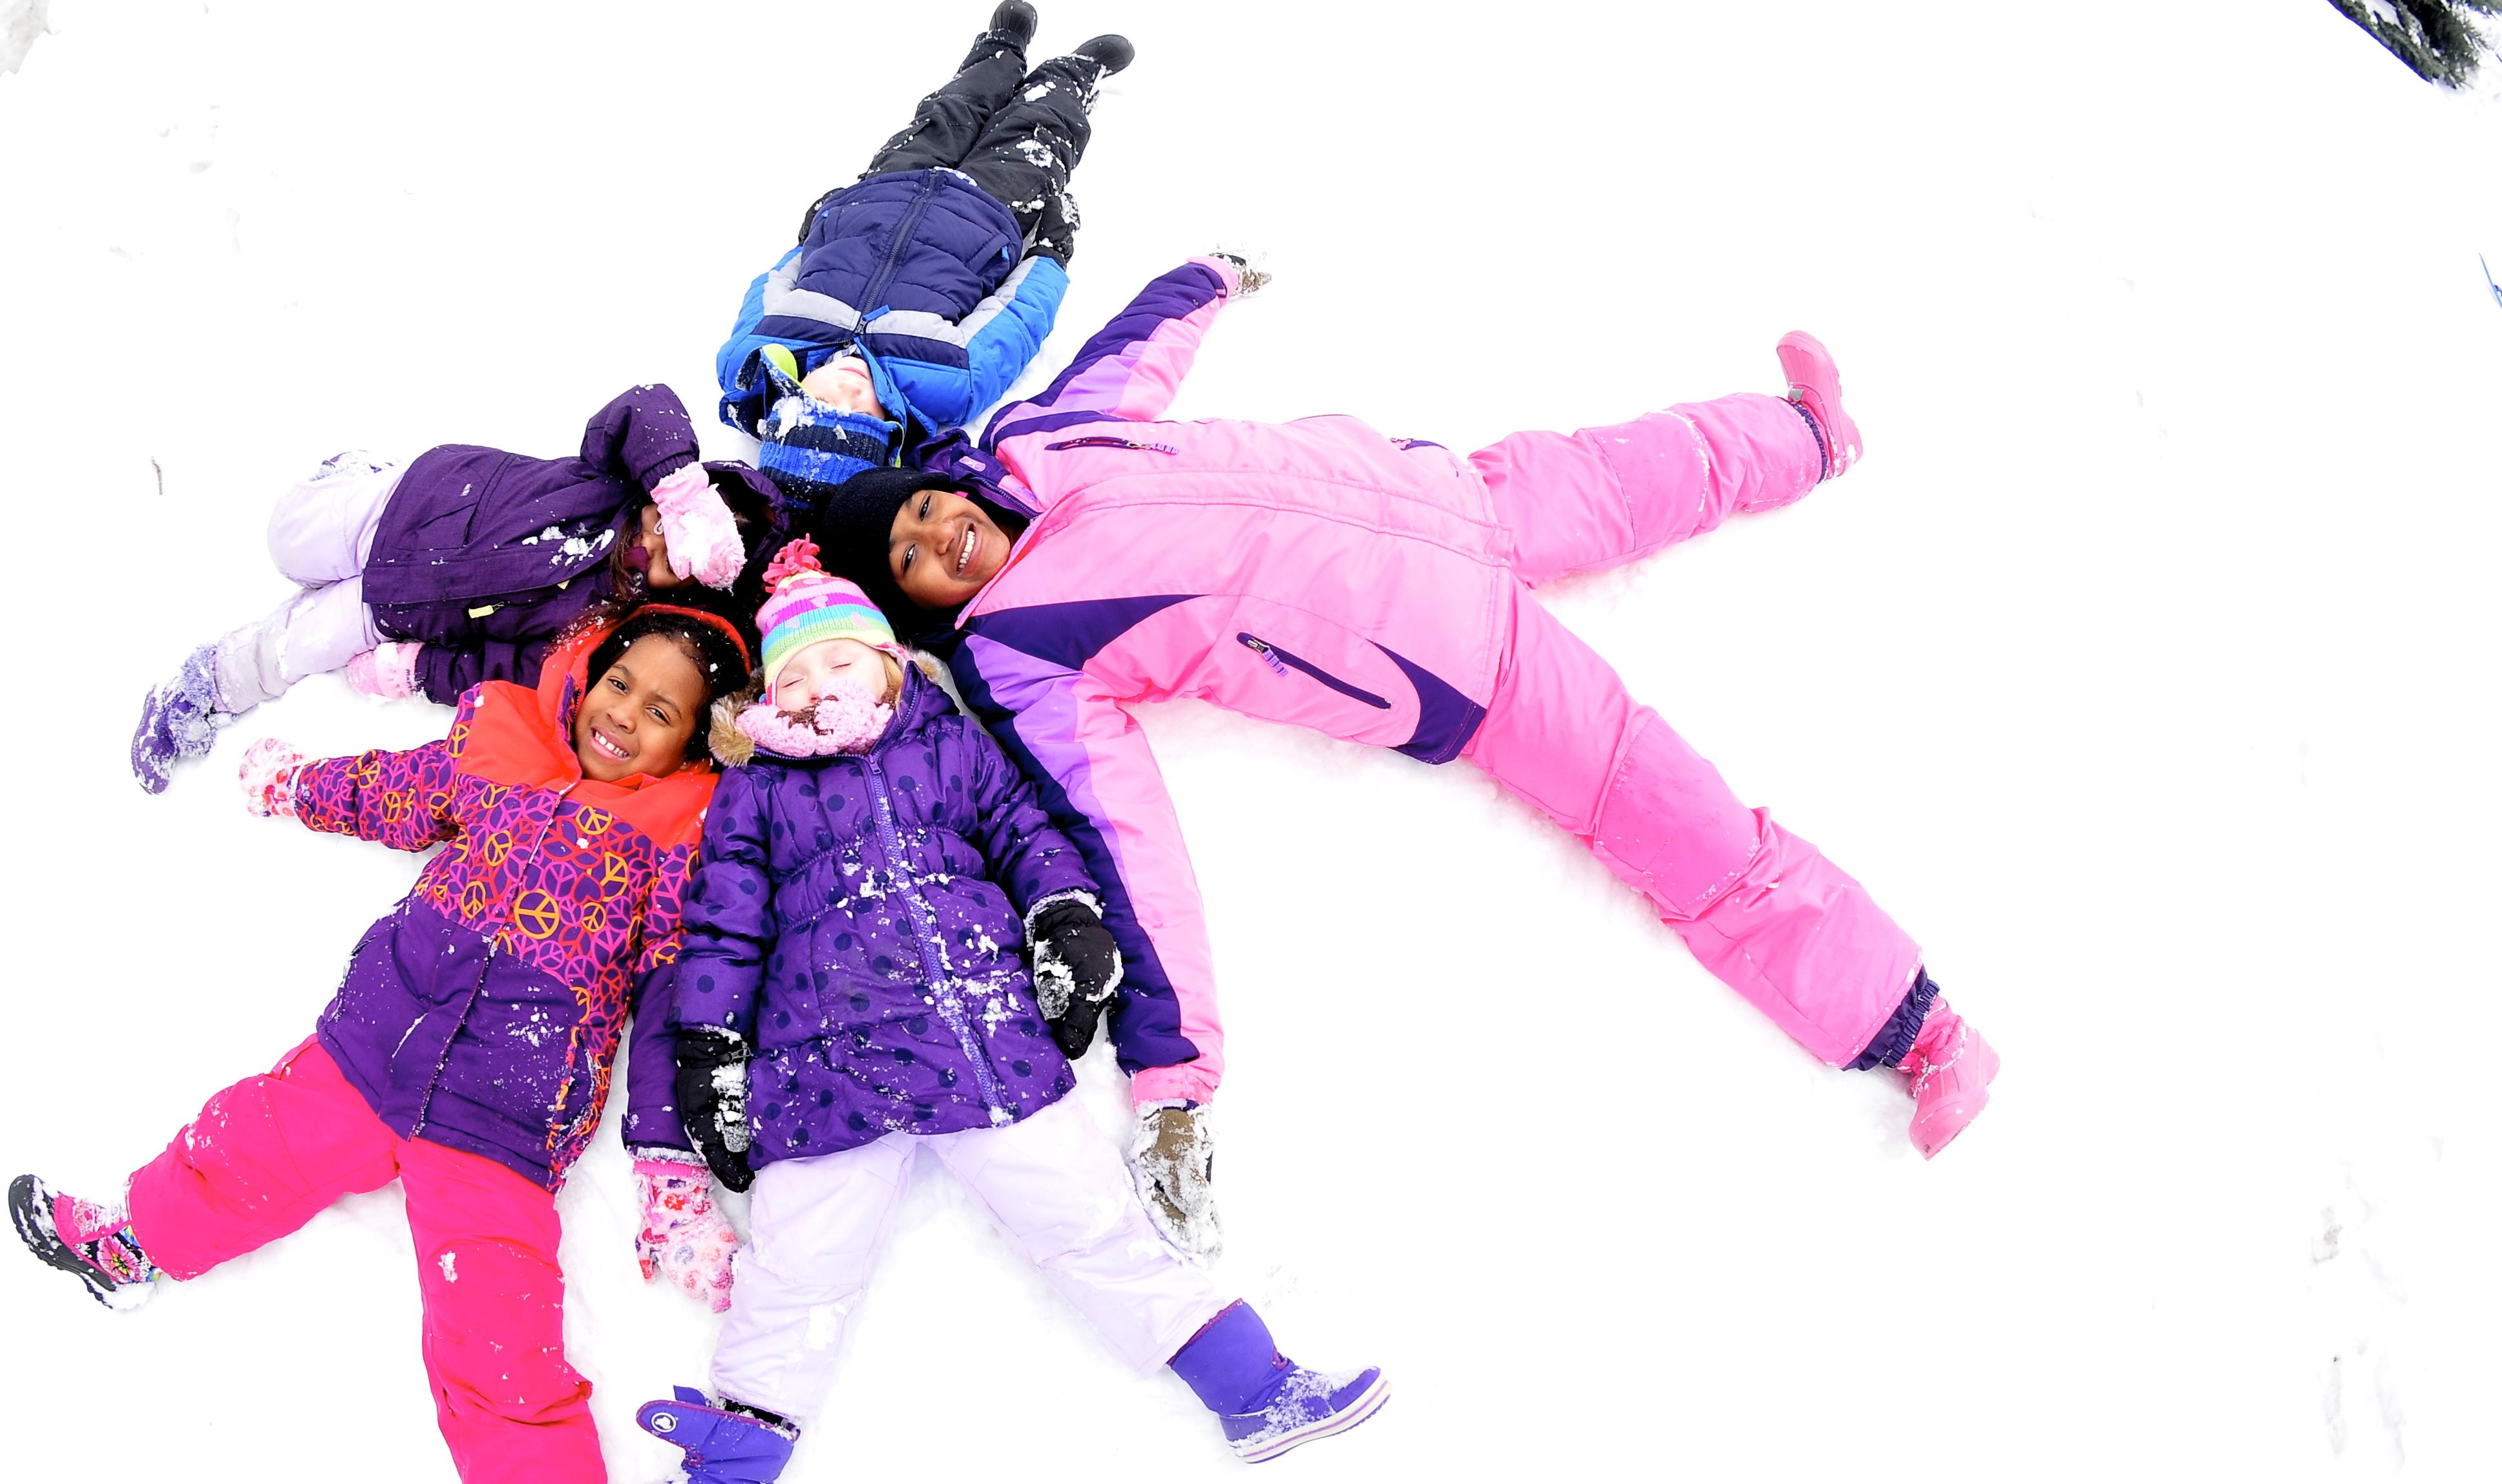 kids laying in snow in circle